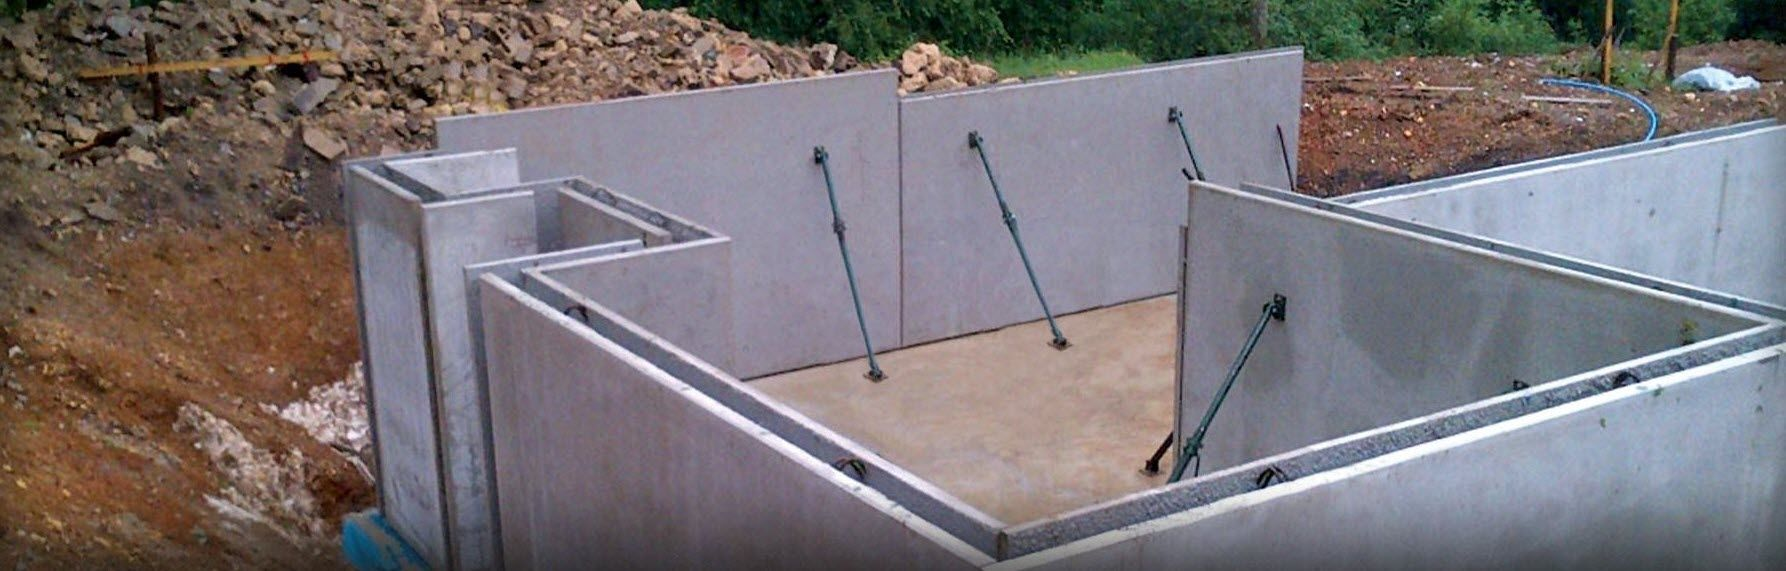 Delightful Precast Concrete Basement Walls Part - 8: Reinforced Concrete Precast Double Wall - BASEMENTS